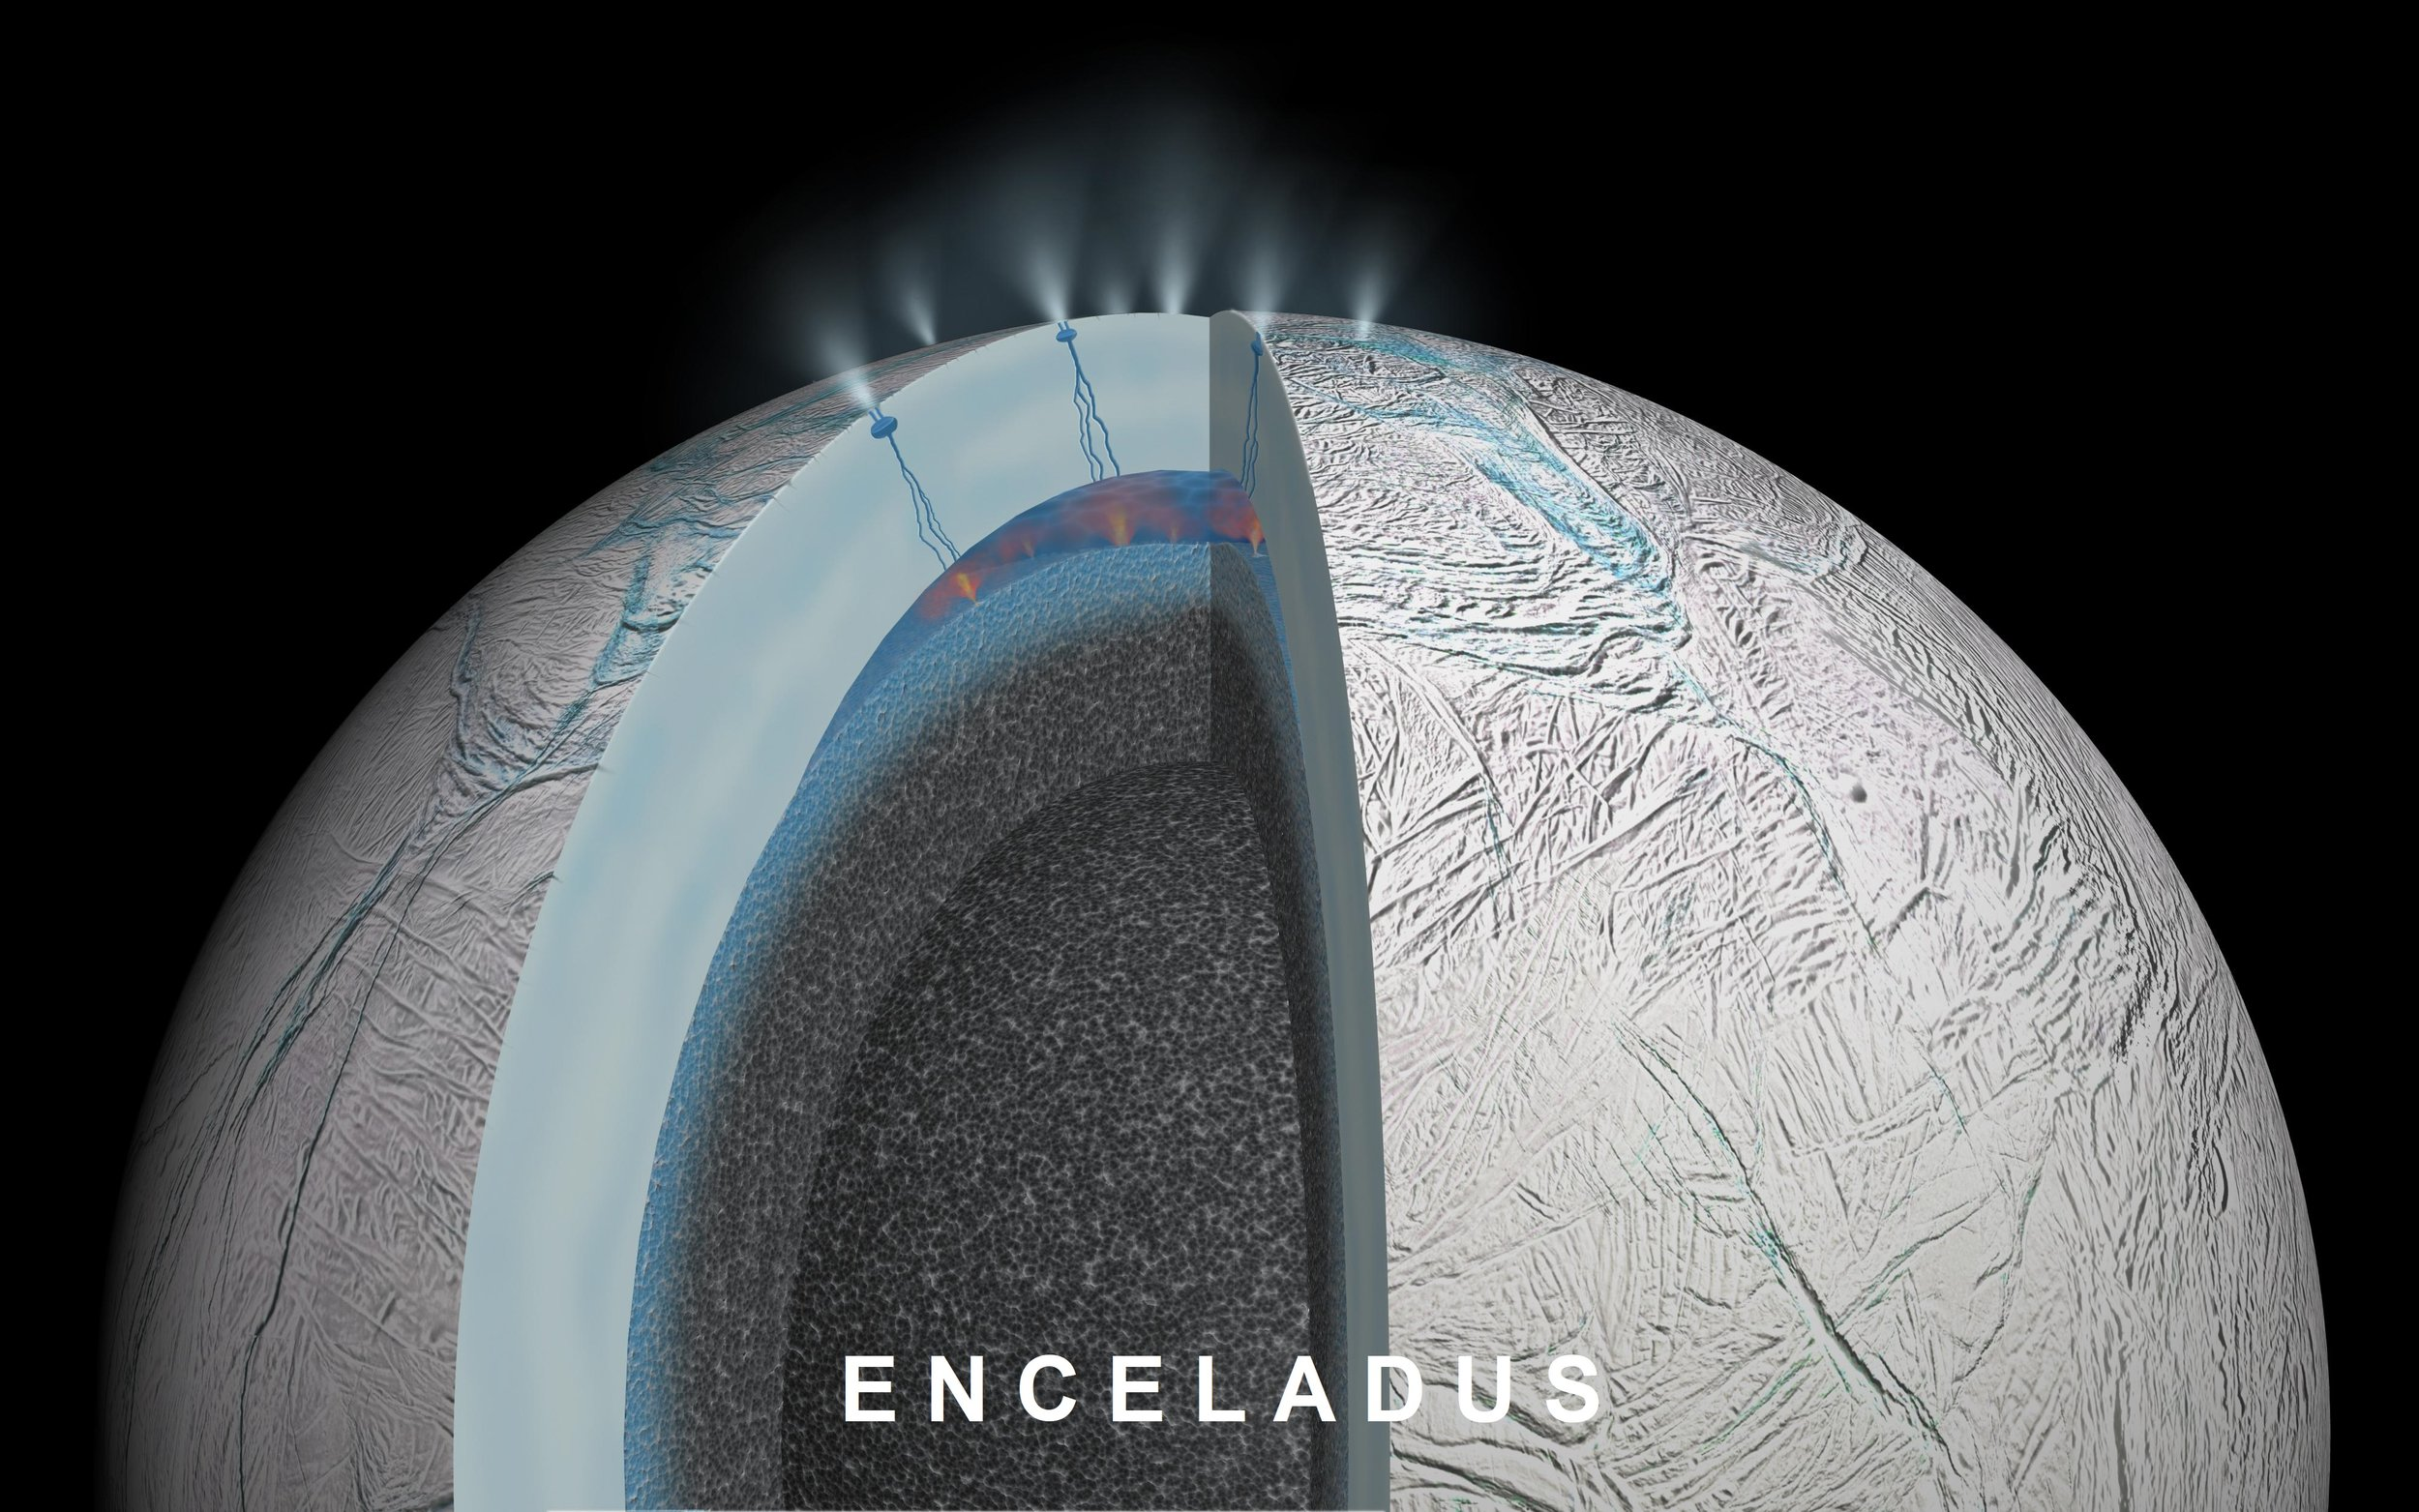 Artists impressions of subsurface oceans underneath thick ice sheets on Jupiter's moon Europa and Saturn's moon Enceladus.  Top image by NASA.